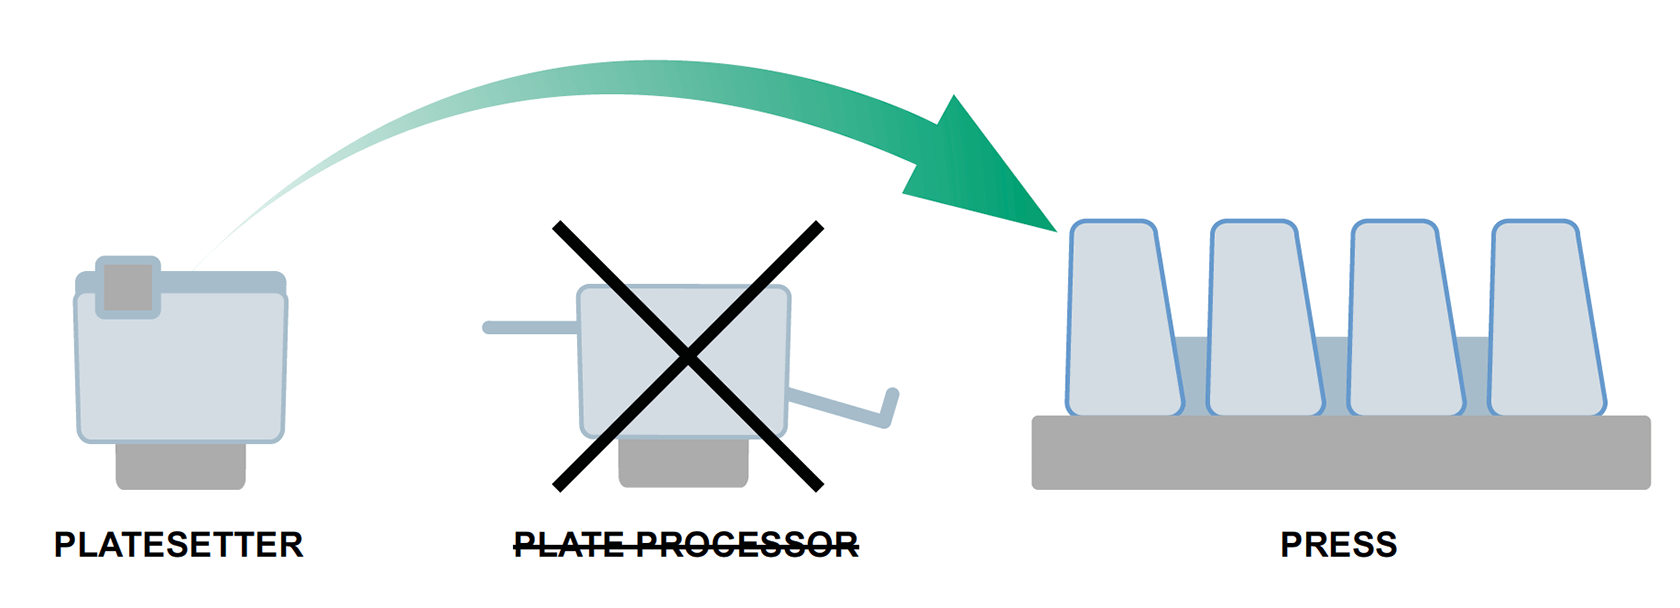 {image] Elimination of plate processor and platesetter mounted directly on press